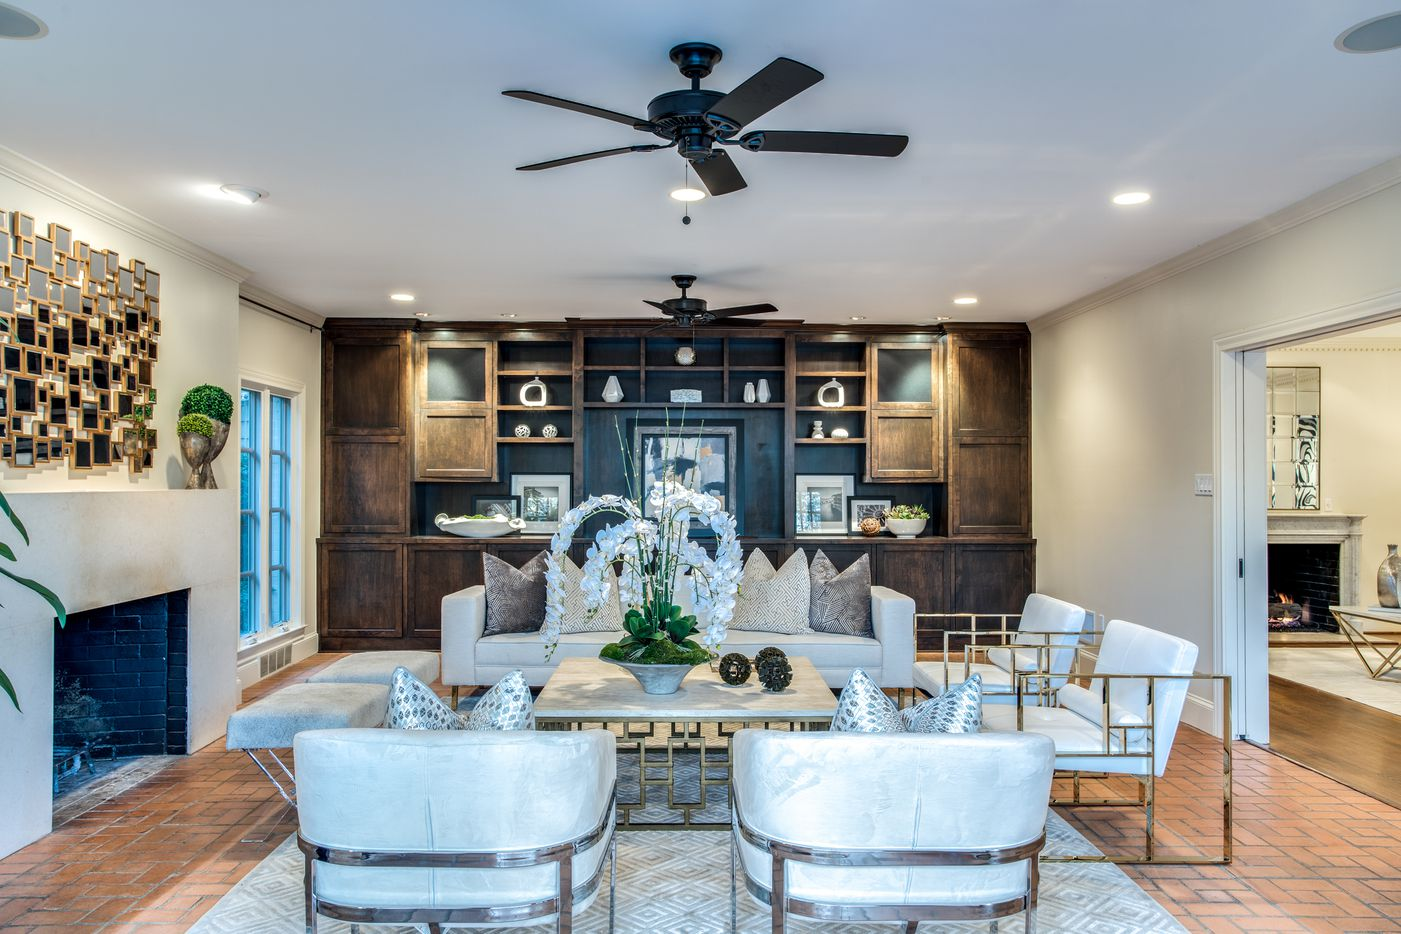 Take a look at the home at 6231 St Andrews Drive in Dallas, TX.